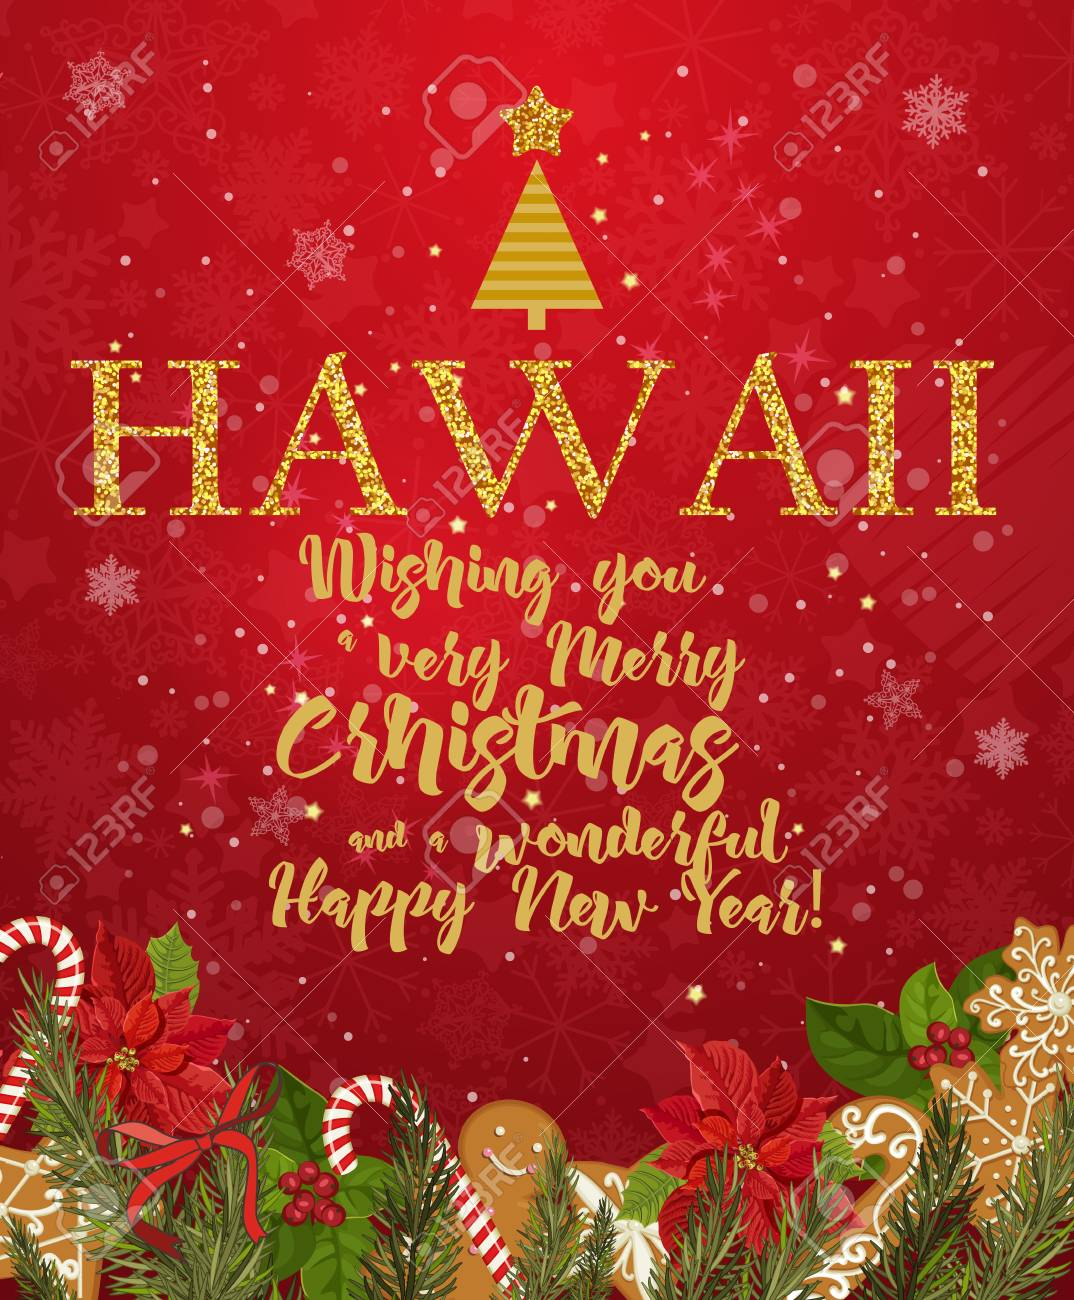 Hawaiian Merry Christmas.Hawaii Merry Christmas And A Happy New Year Greeting Vector Card